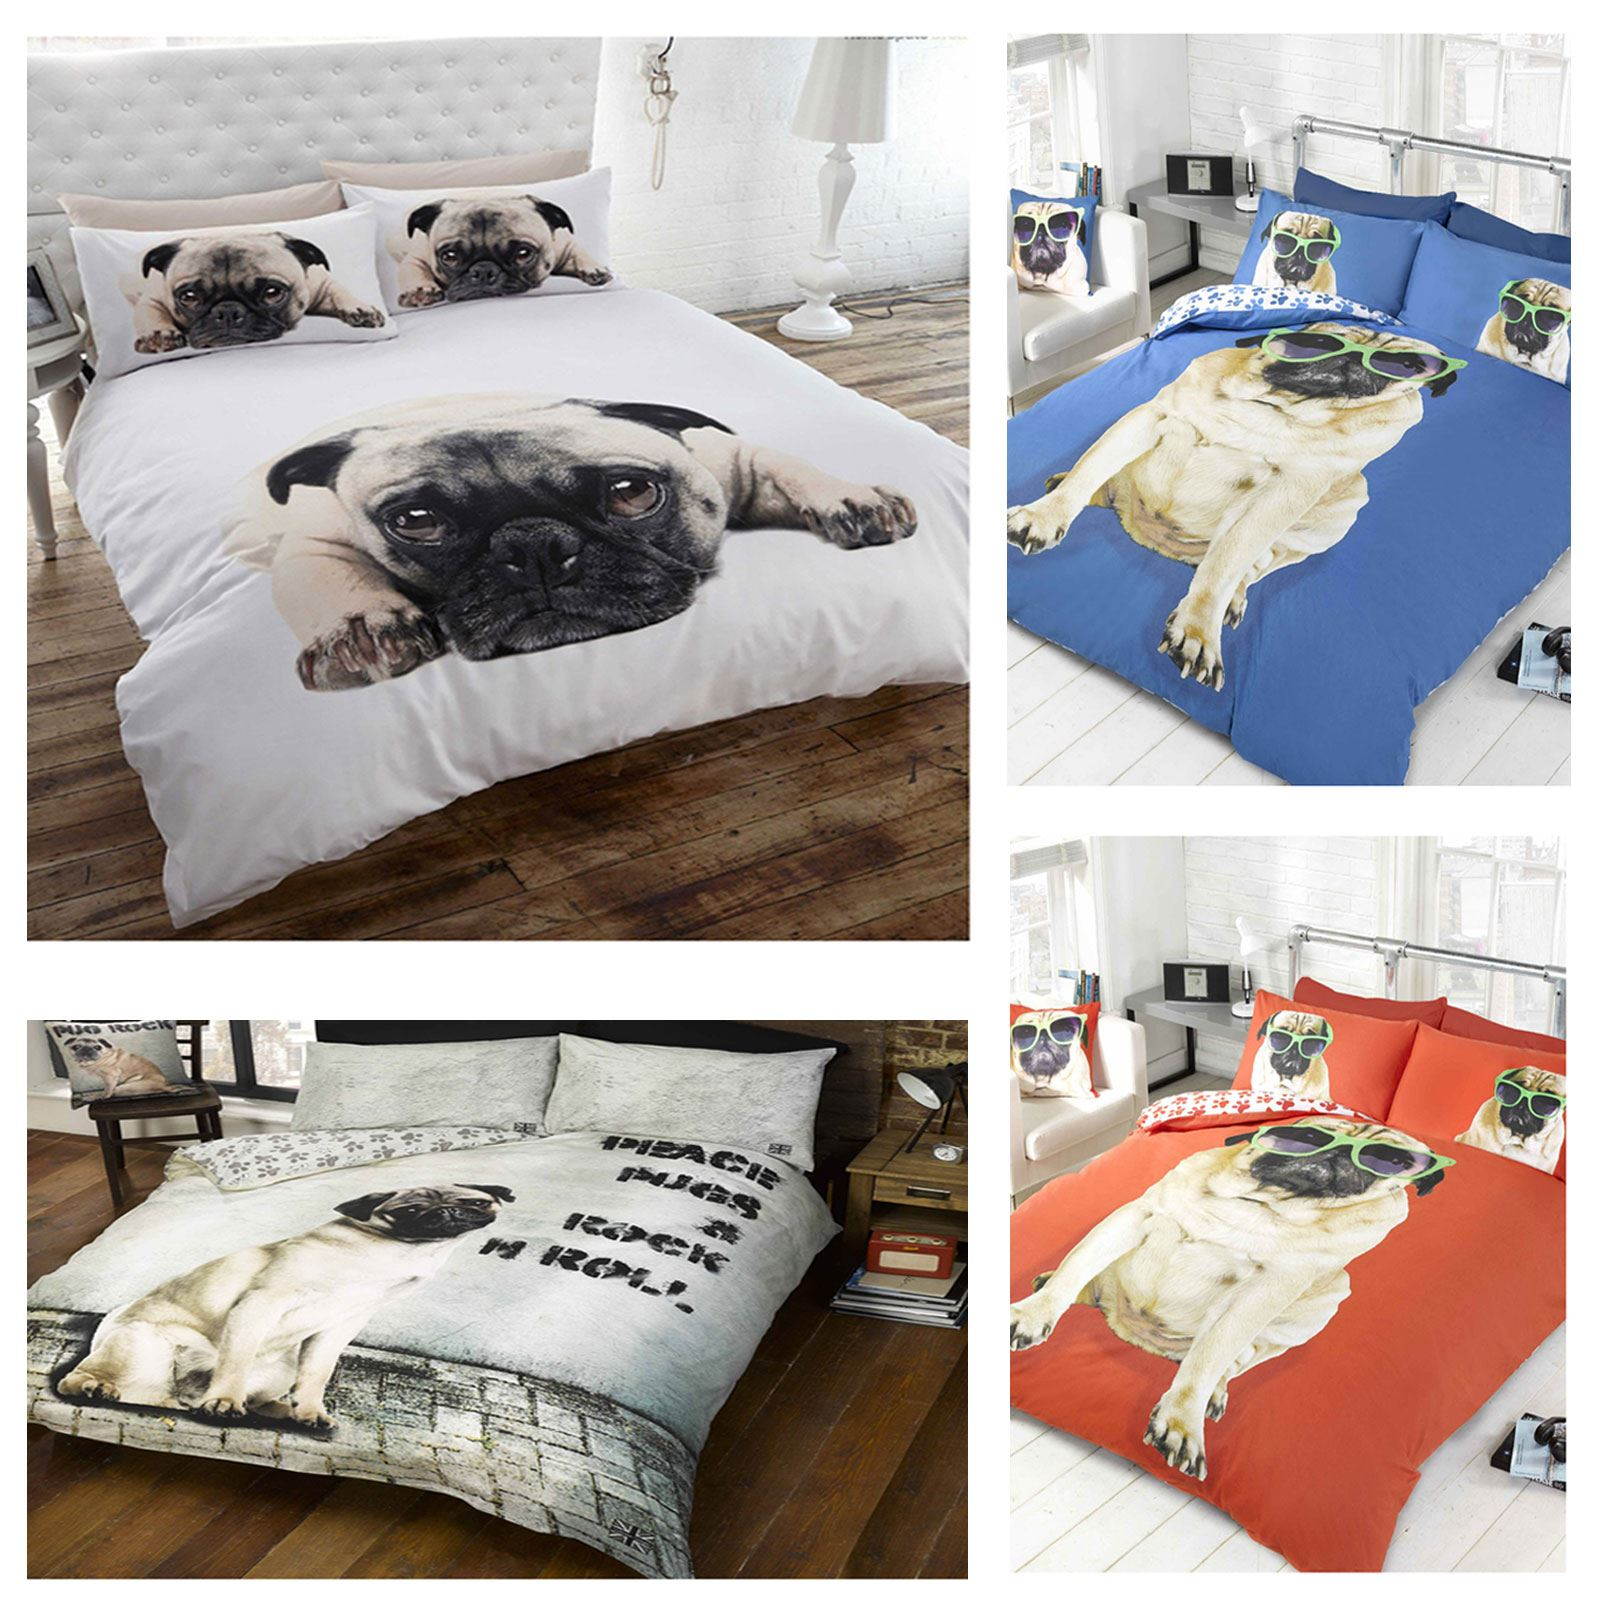 pug design duvet cover sets in single and double kids  adult  - pug design duvet cover sets in single and double kids  adult beddingbedroom